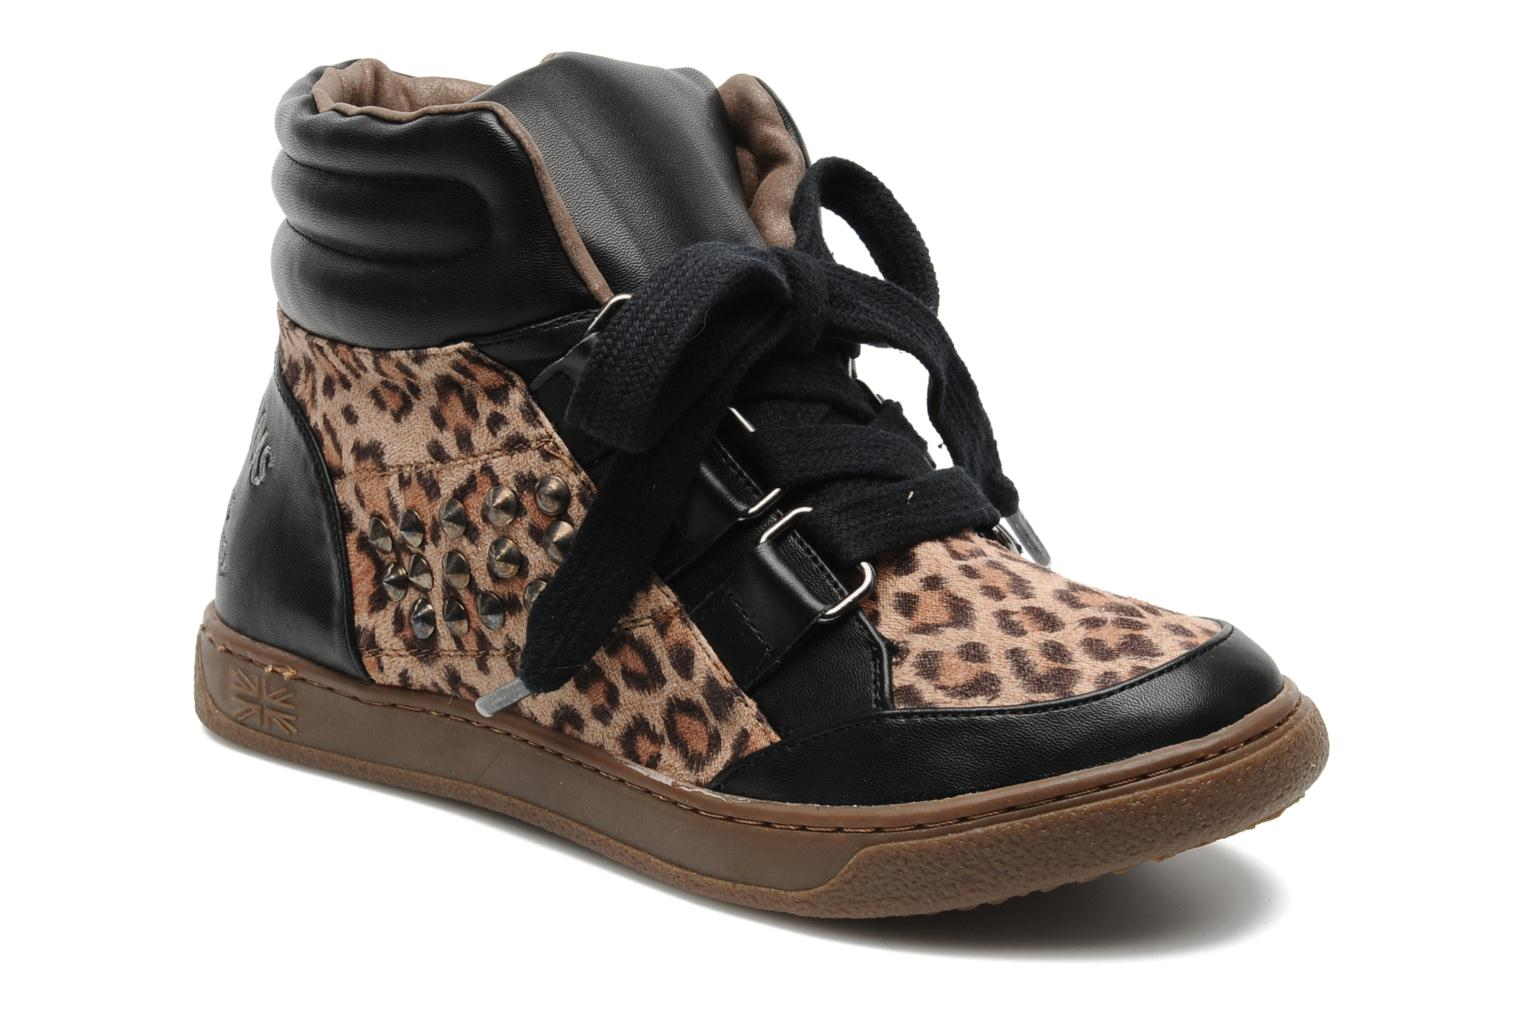 Port Multi leopard